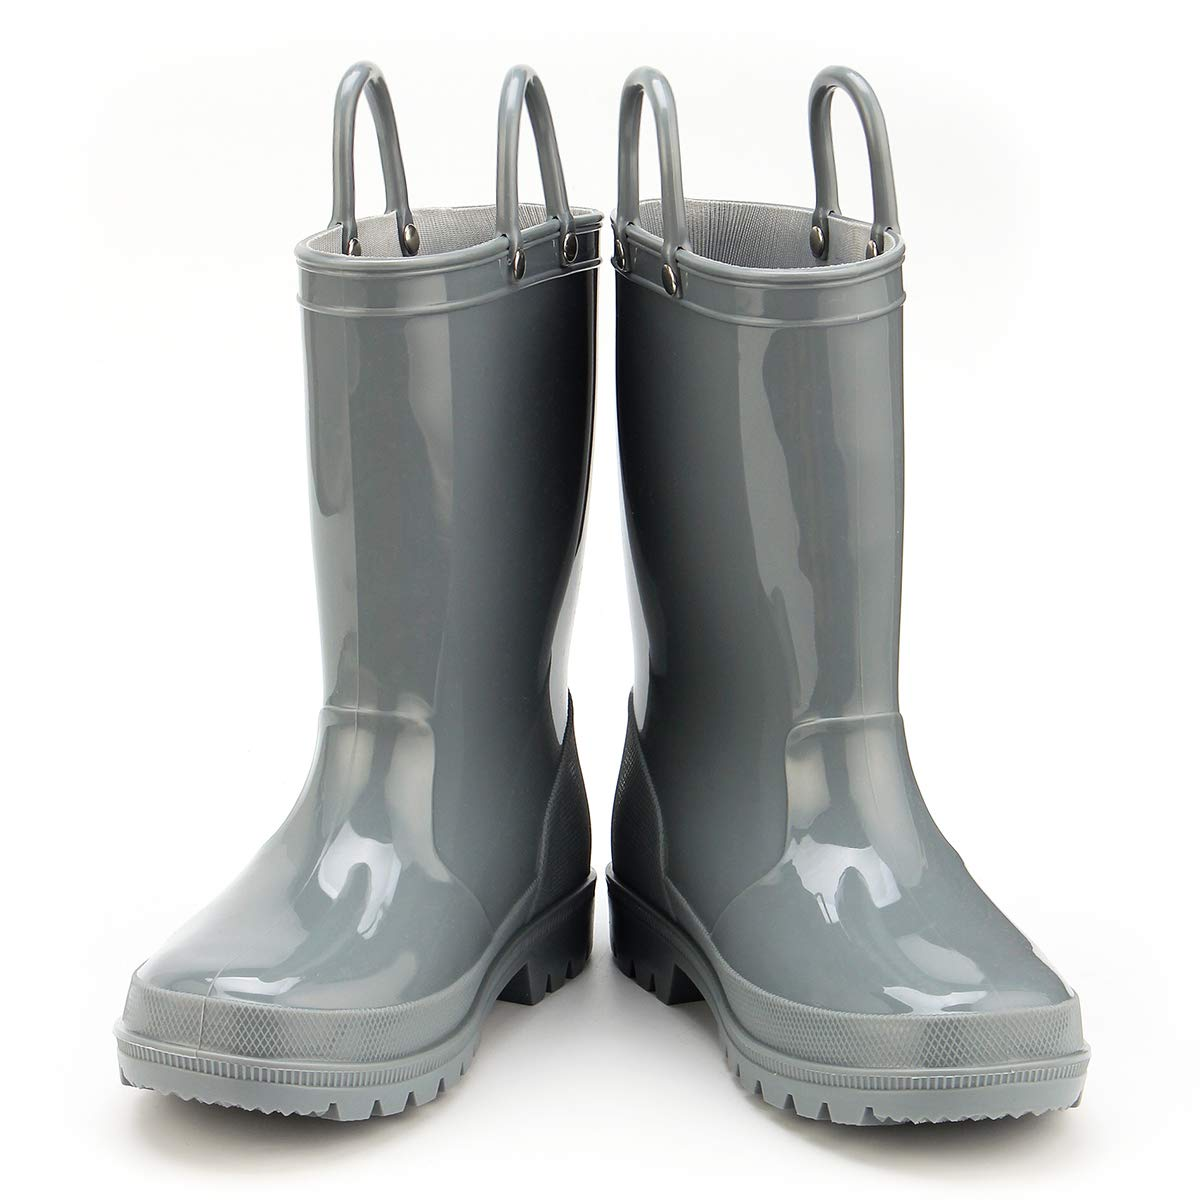 KomForme Kids Rain Boots, Environmental Material Boots with Memory Foam Insole and Easy-on Handles Grey by KKomForme (Image #3)